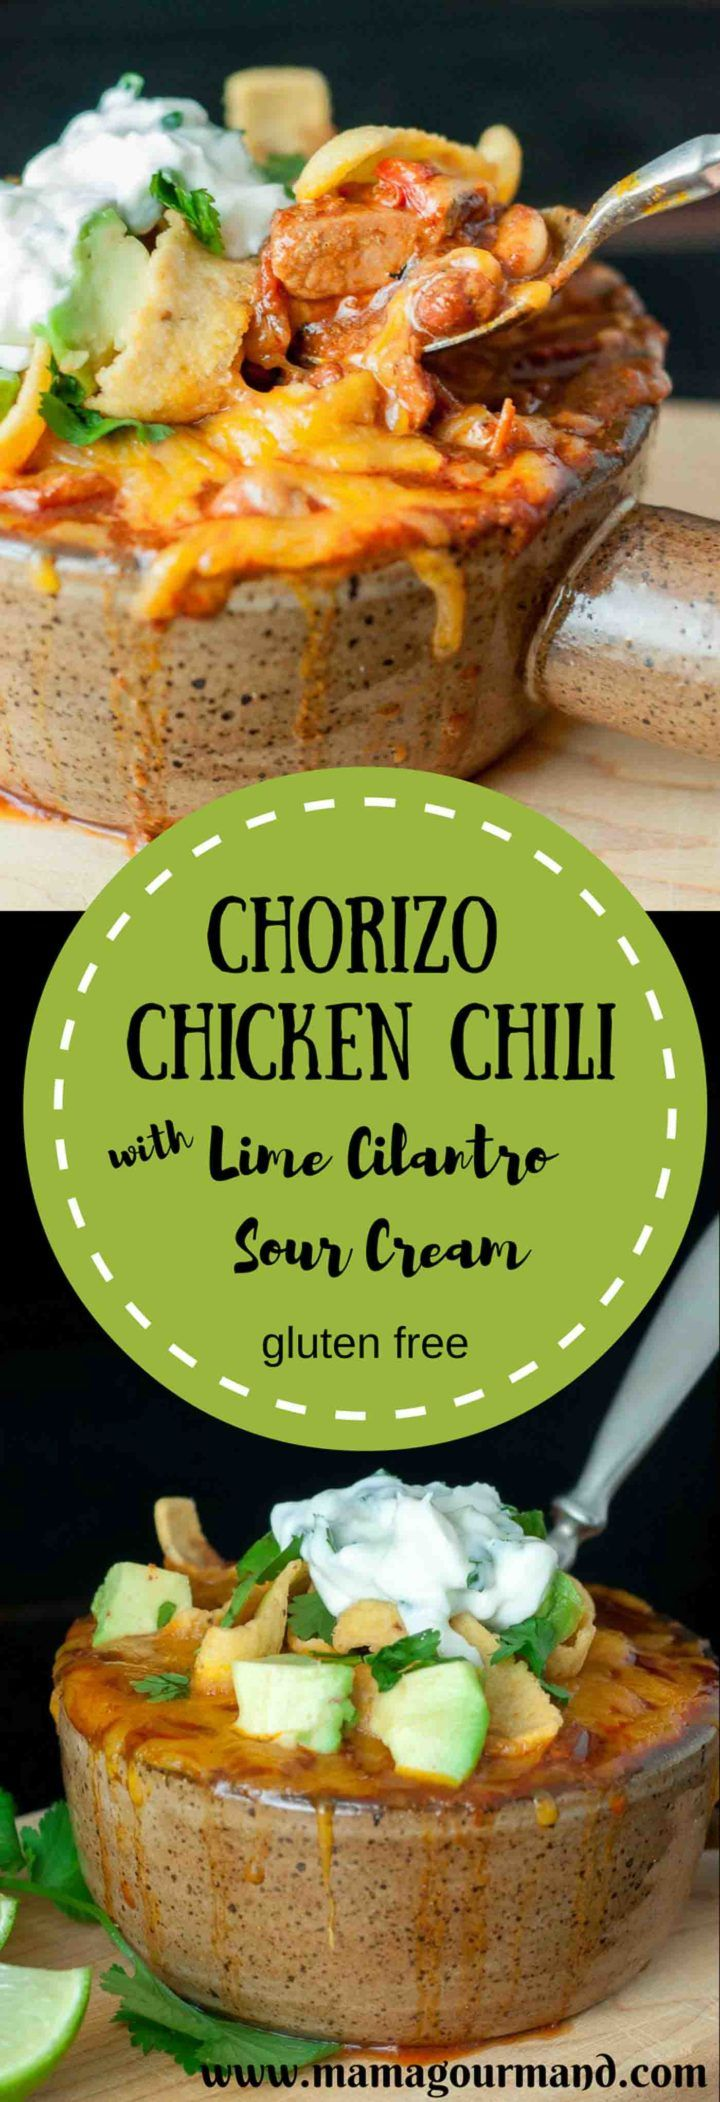 A Chorizo Chicken Chili with Lime Cilantro Sour Cream recipe and tons of useful tips on how to win a chili cook-off or just make an extraordinary chili http://www.mamagourmand.com